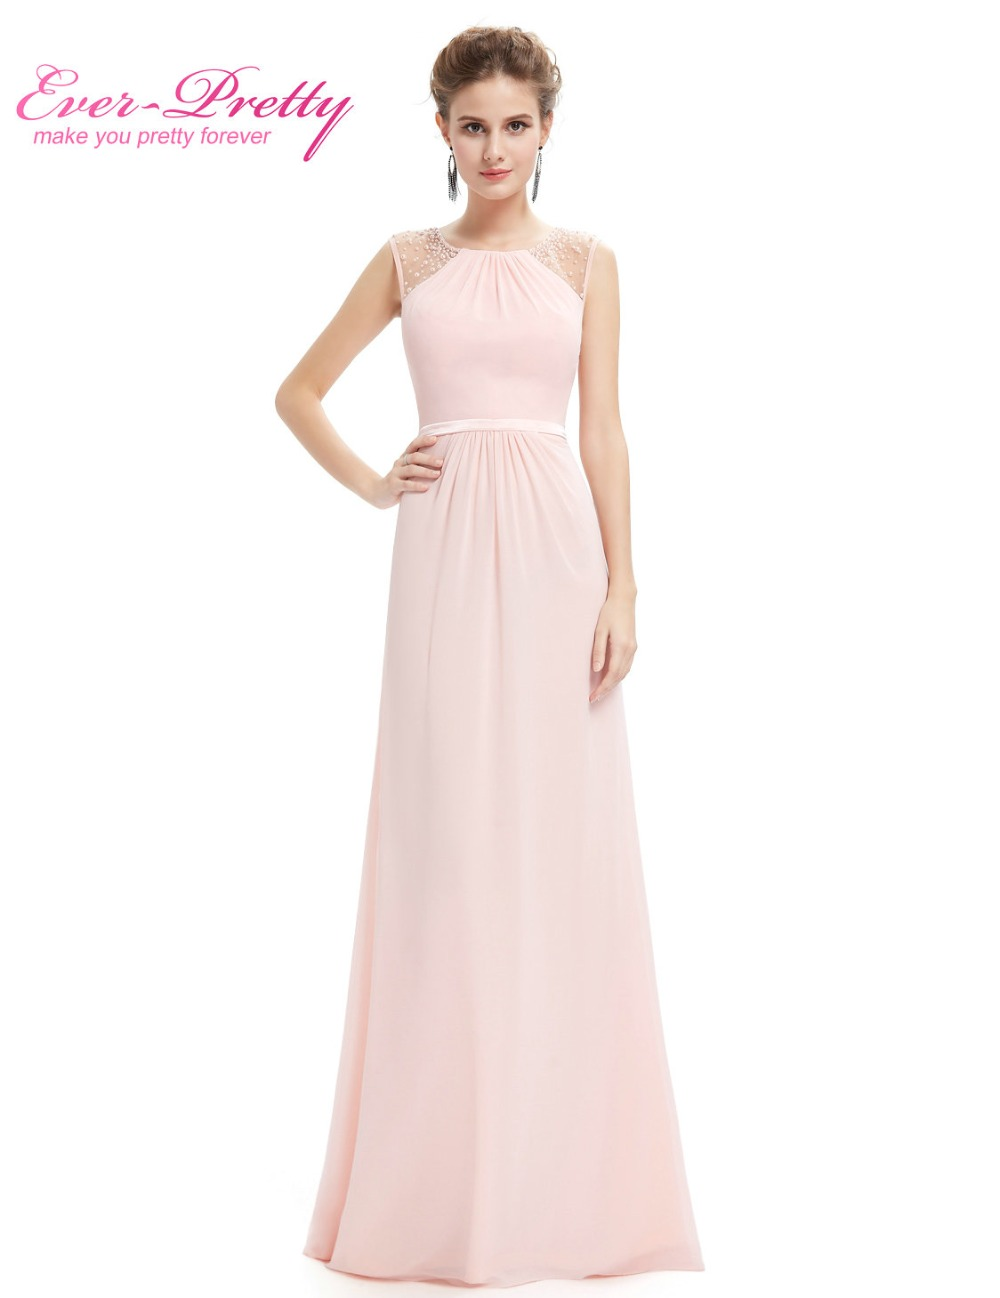 Robe De Soiree Elegant Evening Dresses Ever Pretty EP08742 Pink Women  Sleevesless Long Chiffon Wedding Formal Party Gowns 2018-in Evening Dresses  from ... ff39d5f13